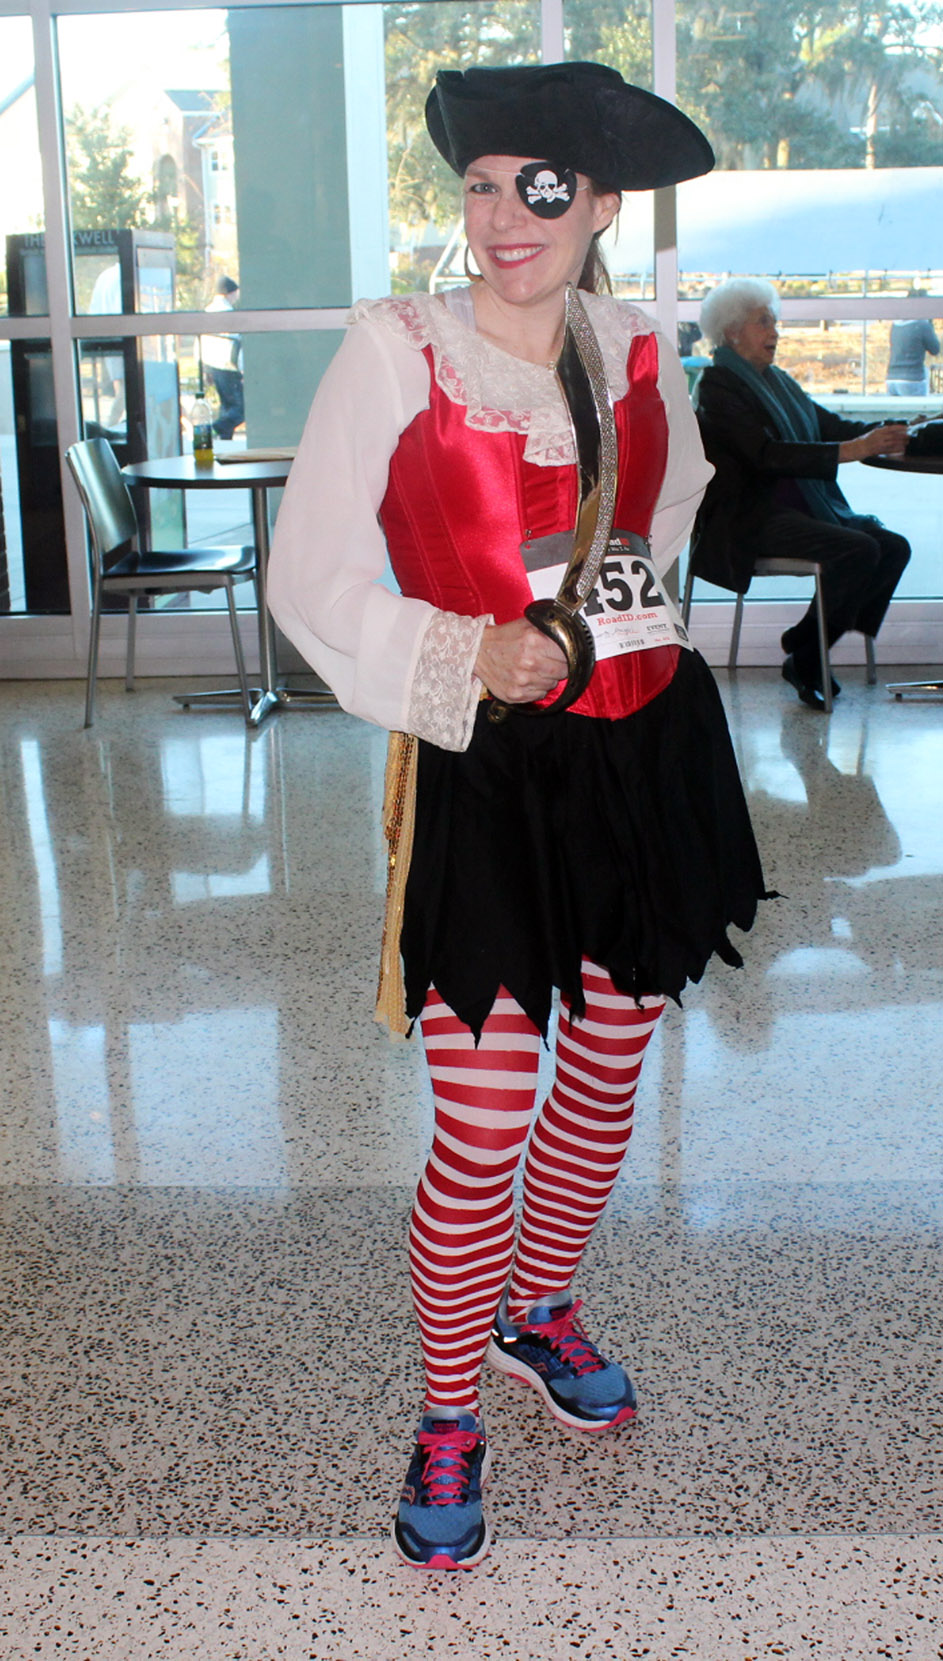 web Abby Hollingsworth, a Savannah resident, in the Student Union dressed as a pirate before the Pirate Road Race Saturday February 13, 2016